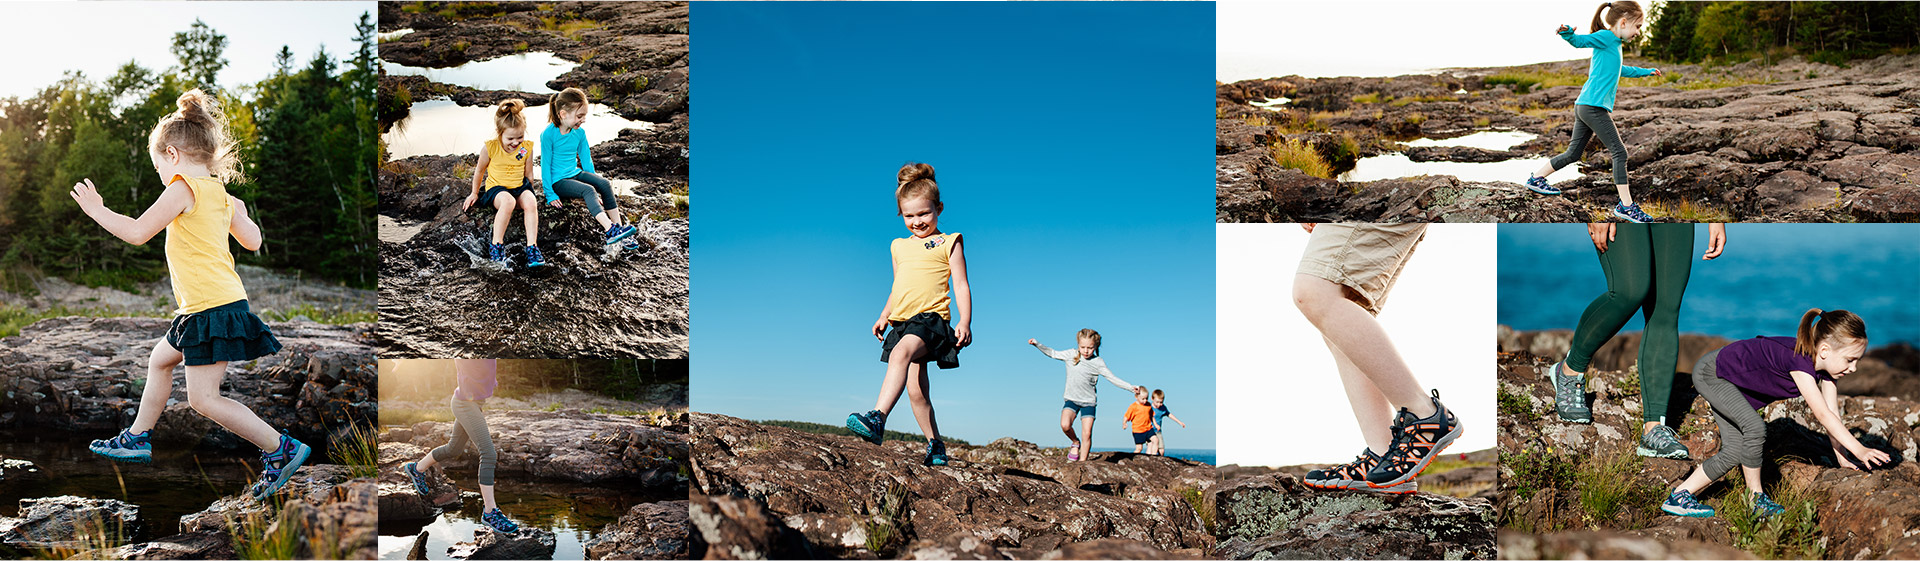 Collage of photos of kids in Choprocks.